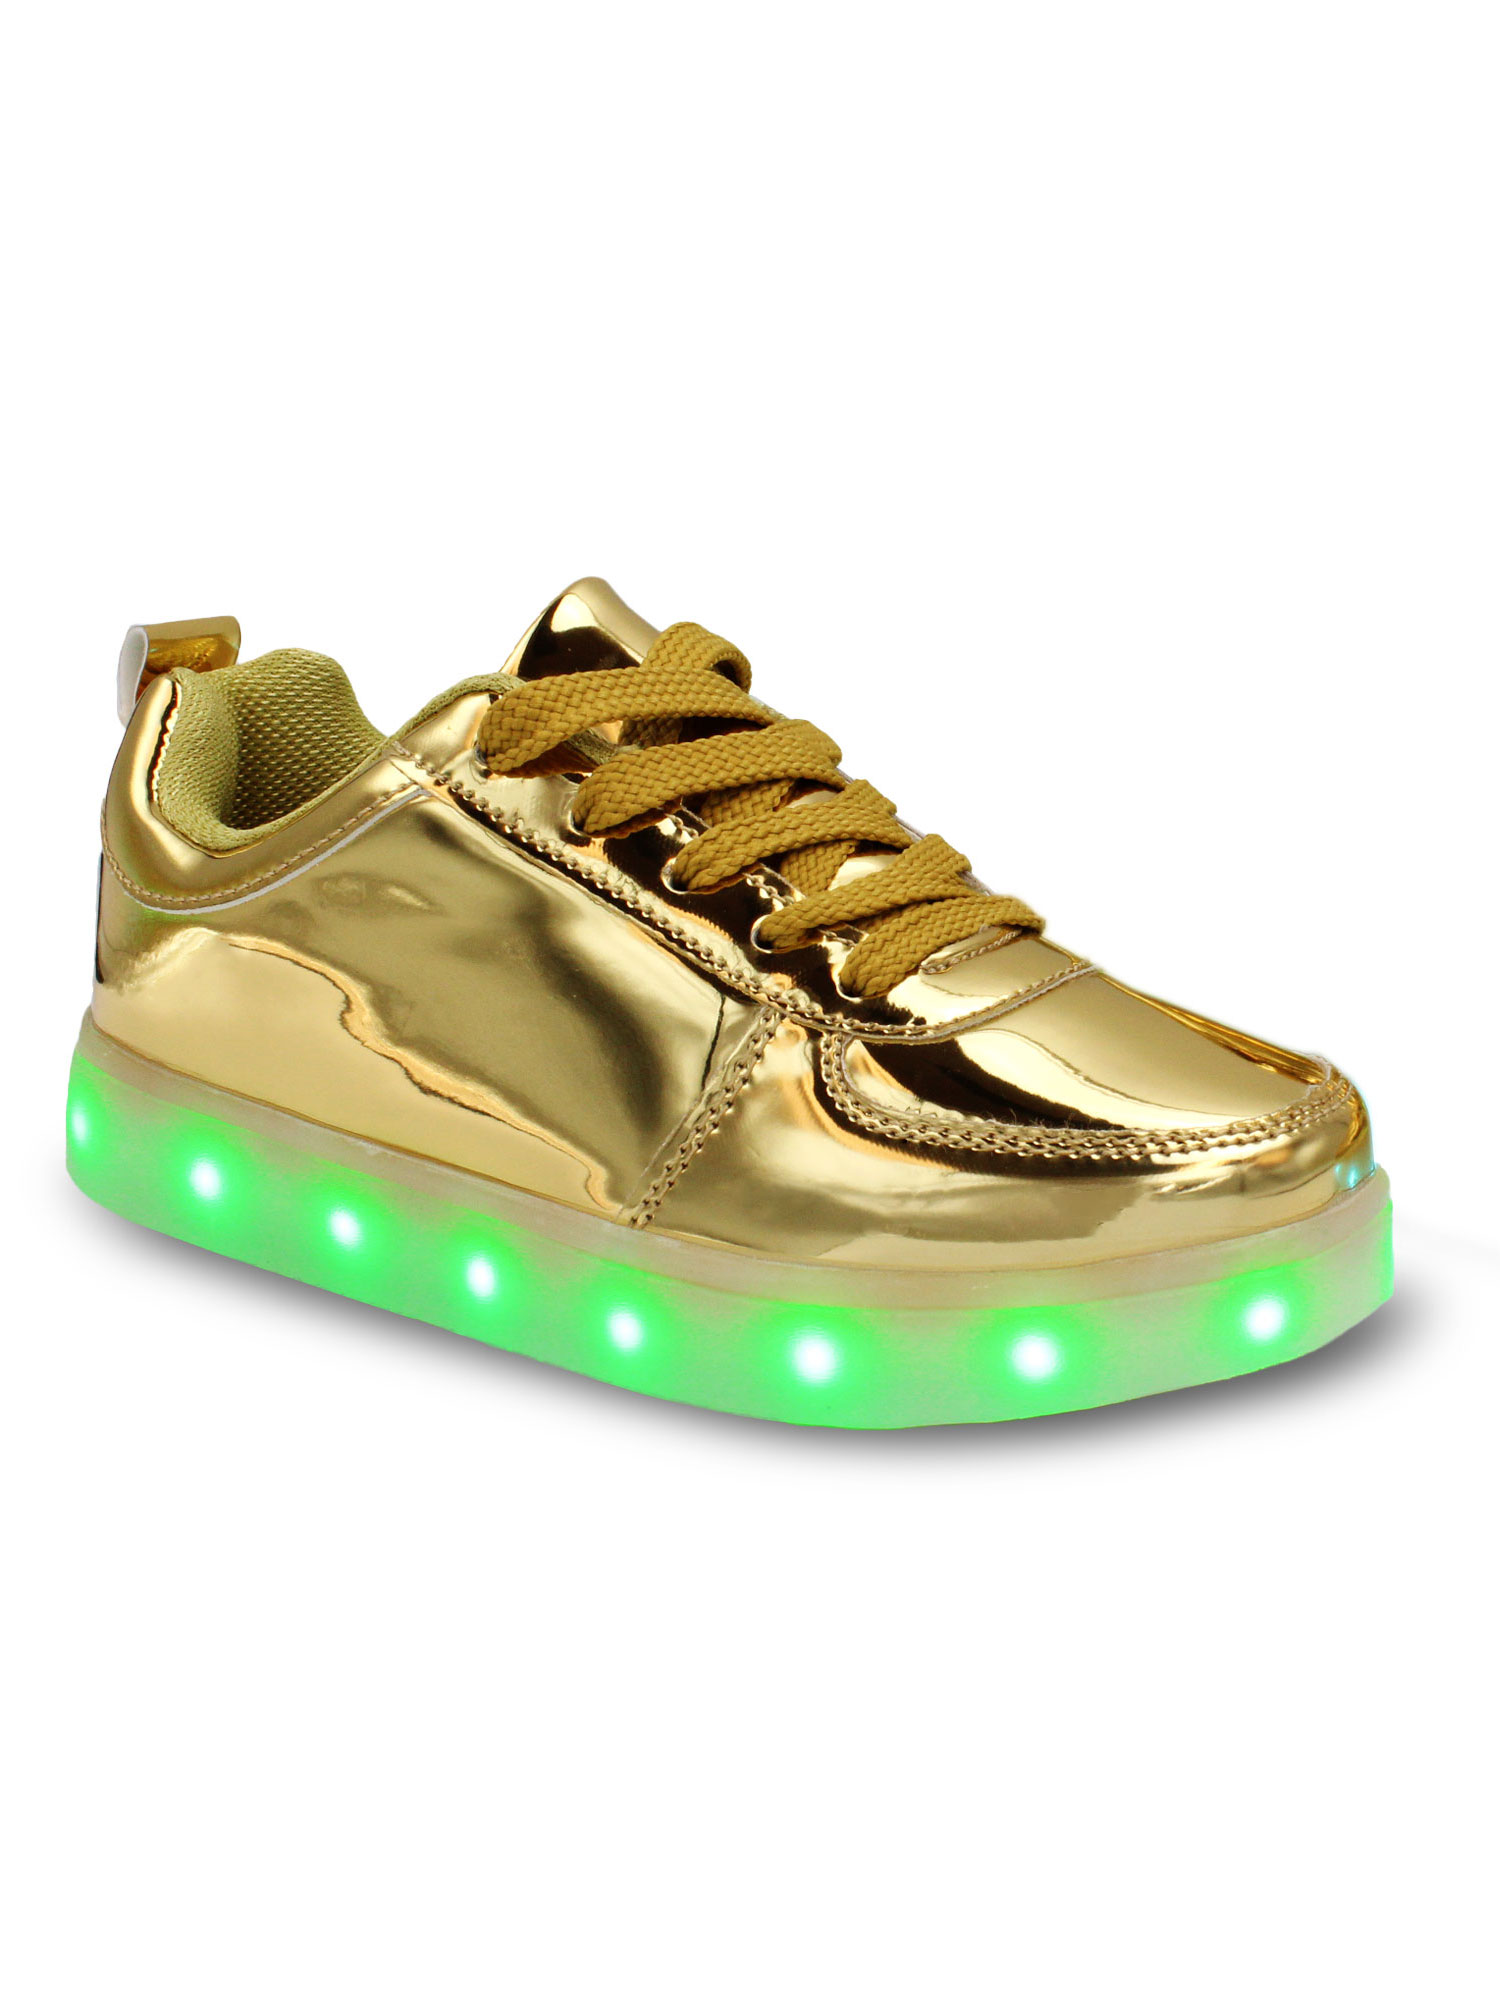 d477224d94b0 Galaxy Shoes - Galaxy LED Shoes Light Up USB Charging Low Top Kids Sneakers  (Pink Glossy) - Walmart.com